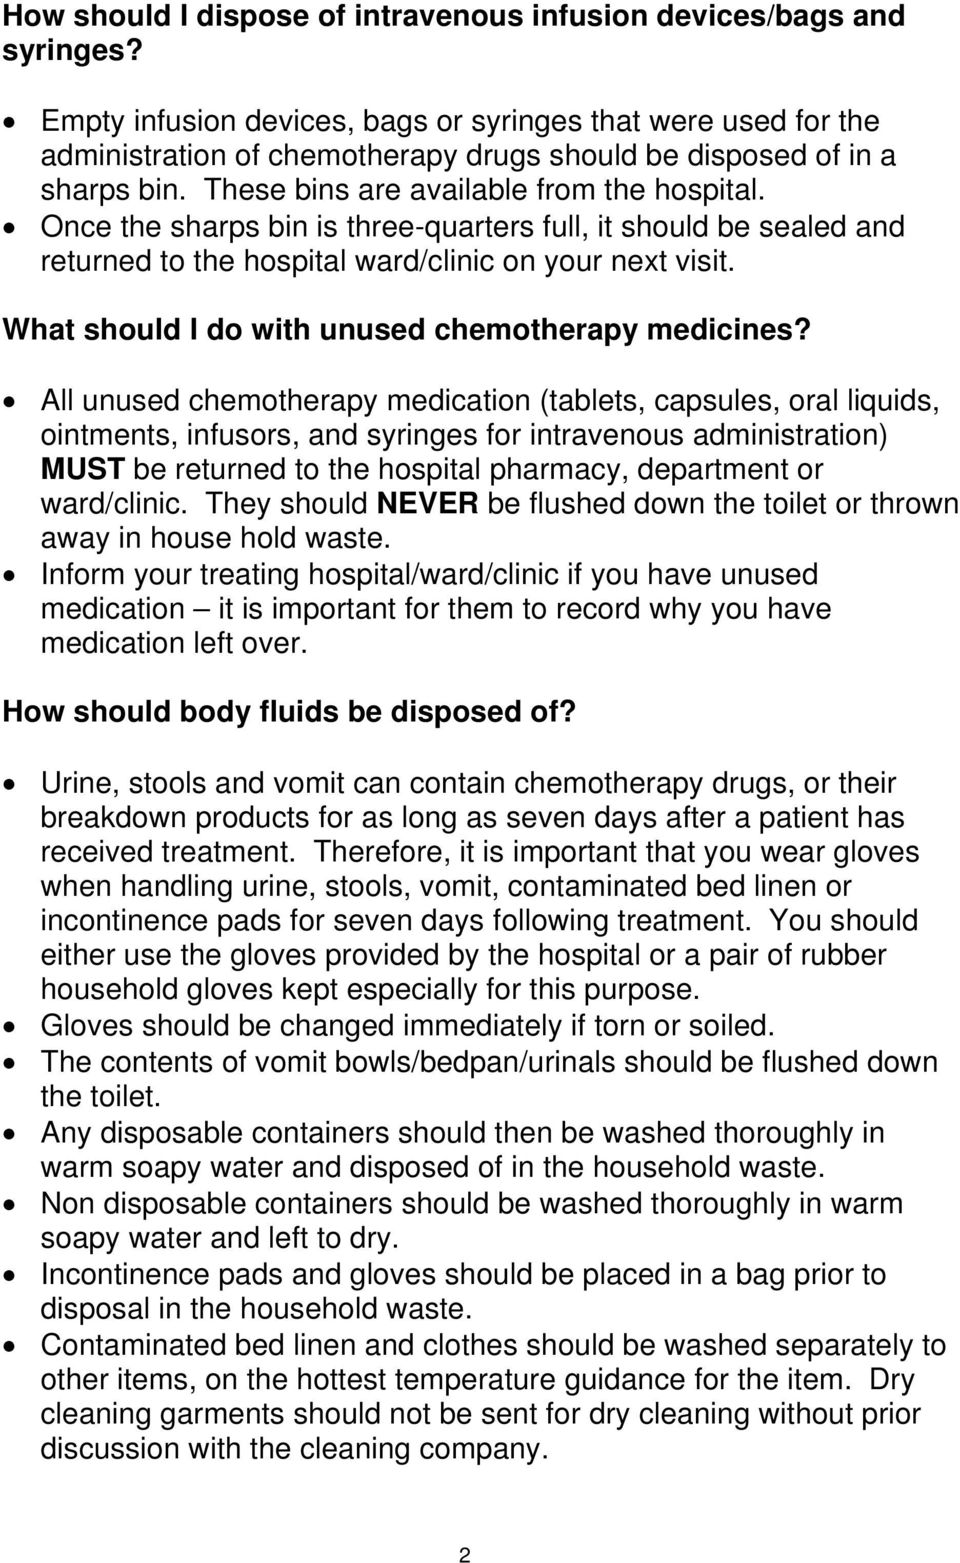 Once the sharps bin is three-quarters full, it should be sealed and returned to the hospital ward/clinic on your next visit. What should I do with unused chemotherapy medicines?